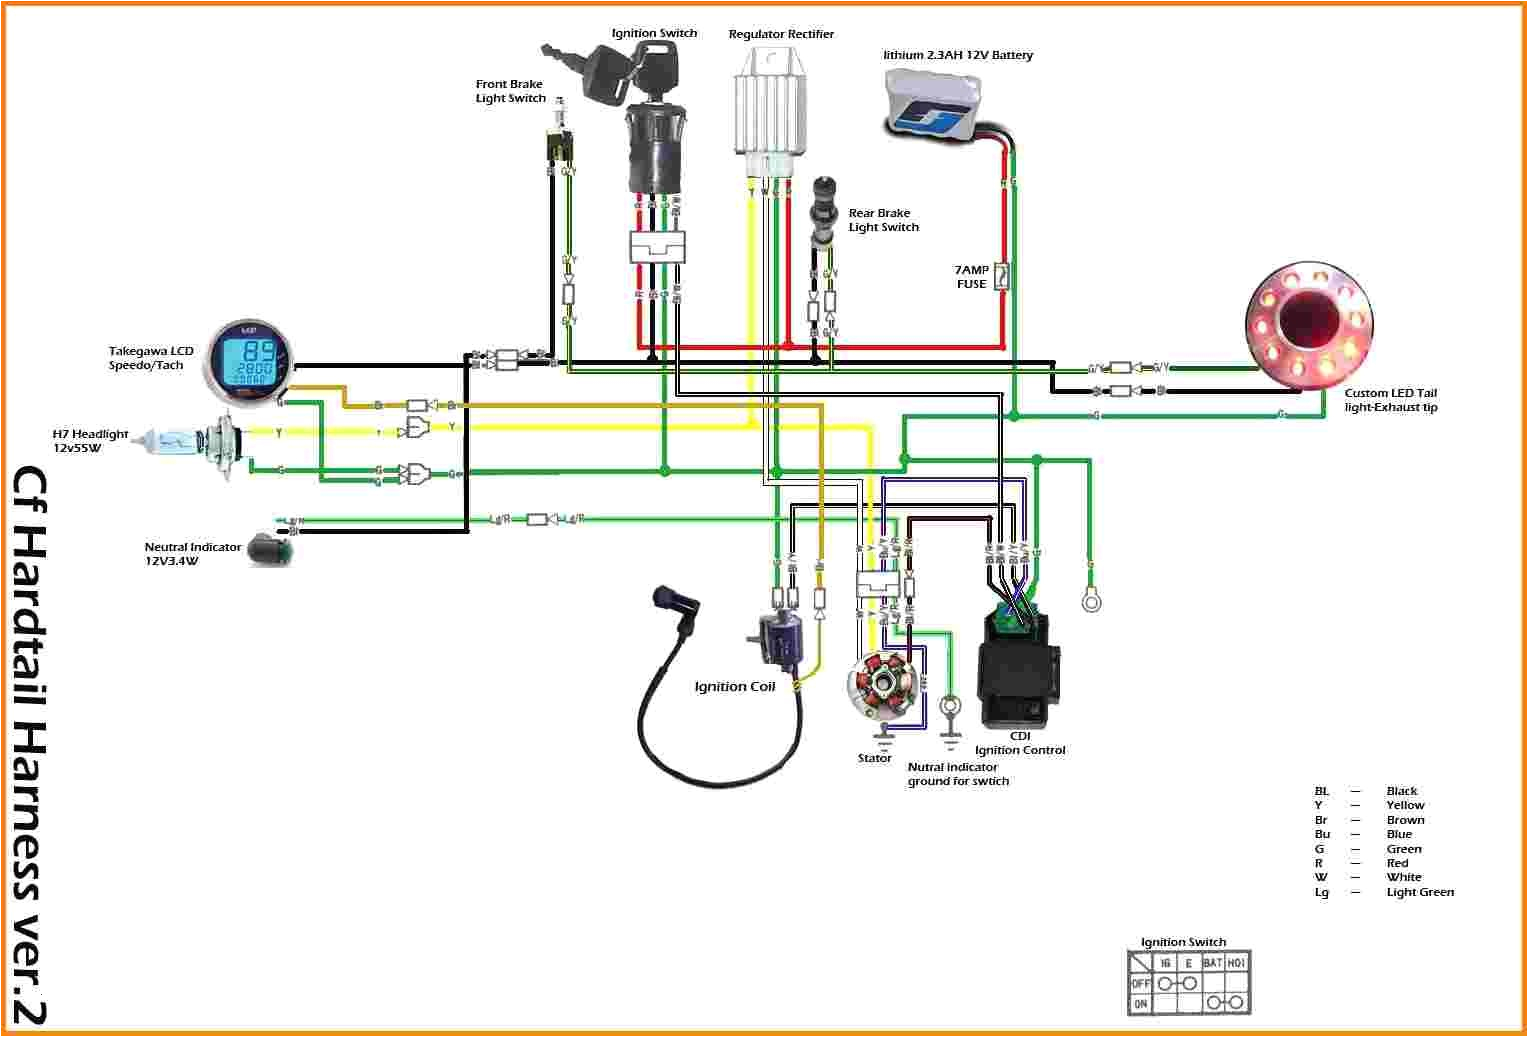 110cc wiring harness diagram best of 110cc chinese atv wiring diagram schaferforcongressfo